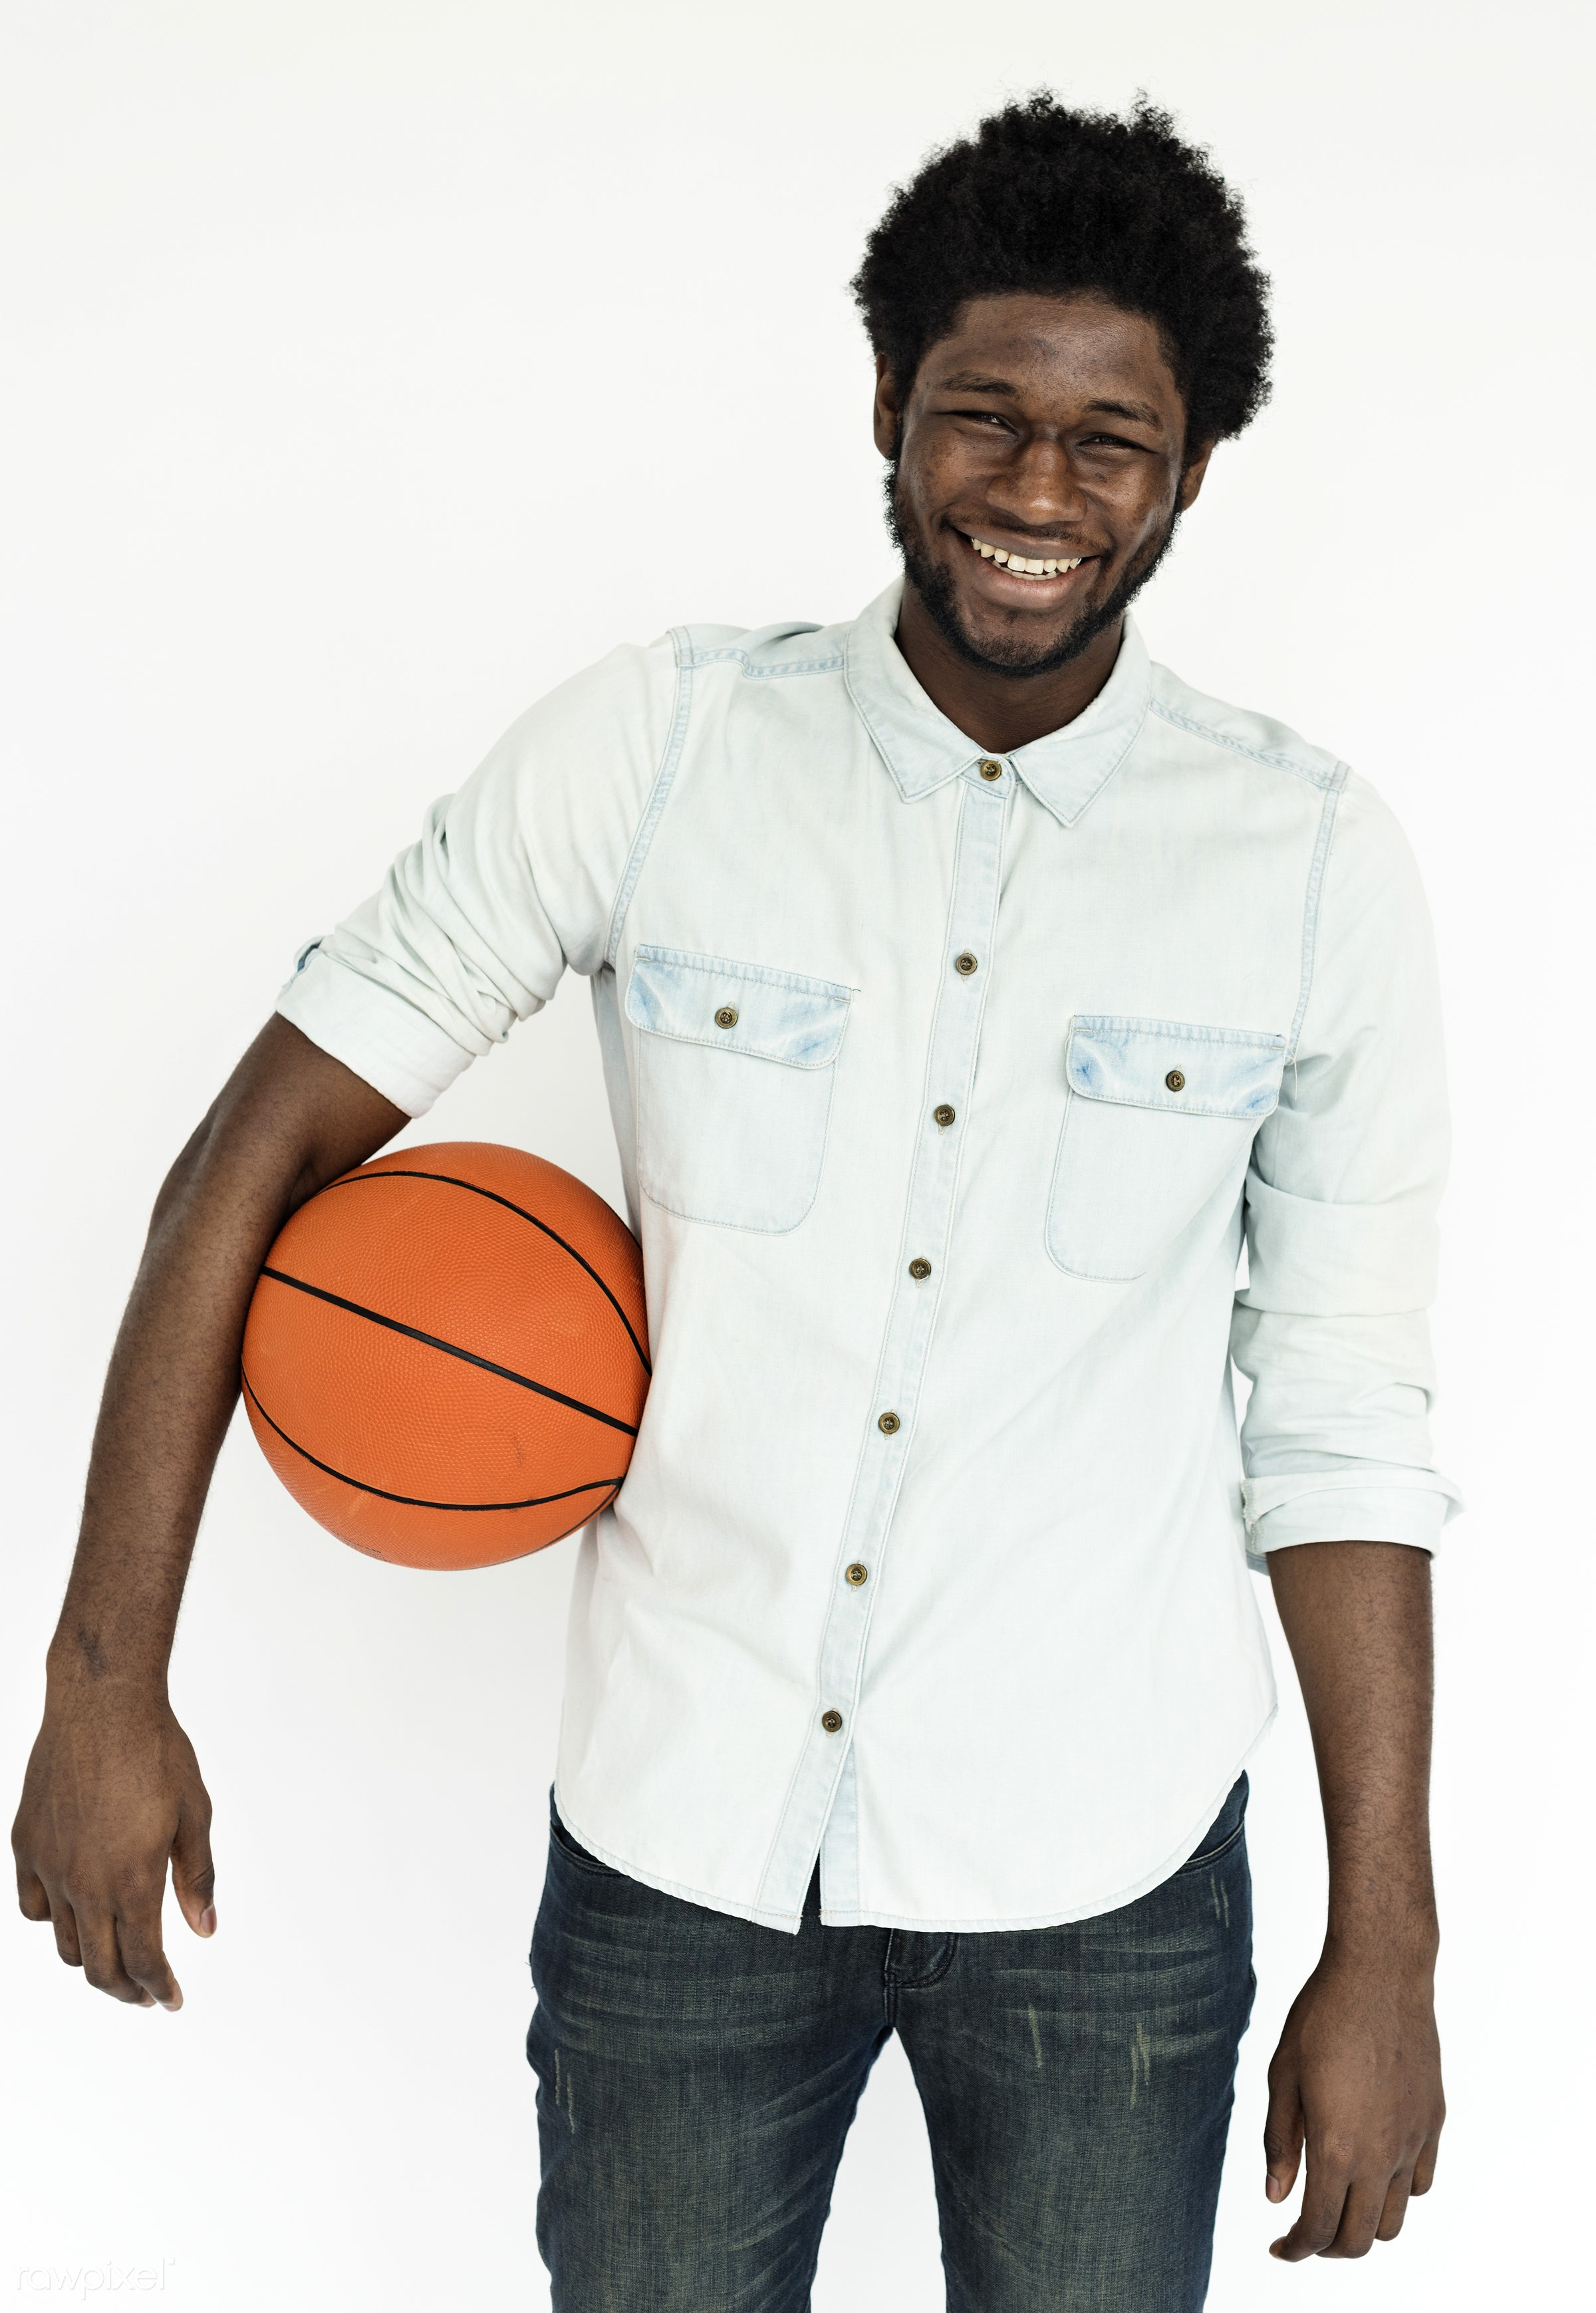 studio, basketball, expression, person, player, african, isolated on white, recreation, casual, cheerful, smiling, man,...